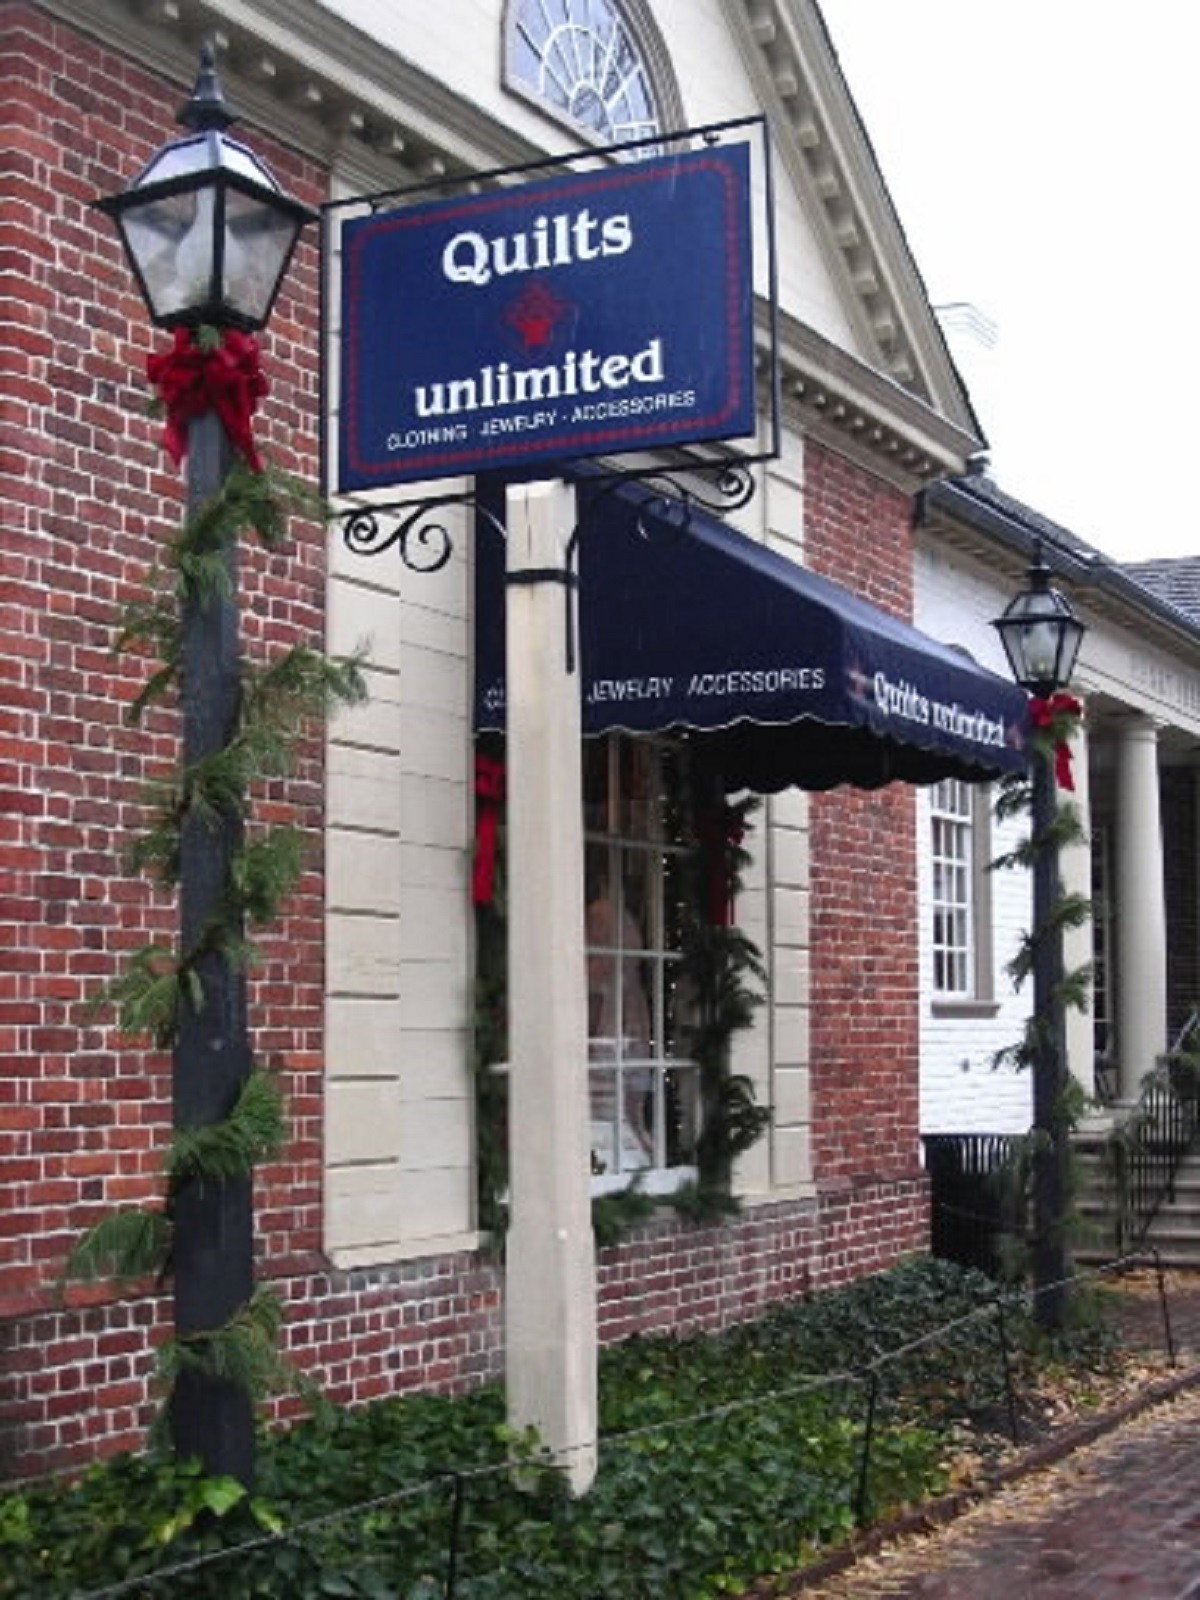 Quilts Unlimited in Williamsburg merges with sister store - Daily ... : quilt shops williamsburg va - Adamdwight.com